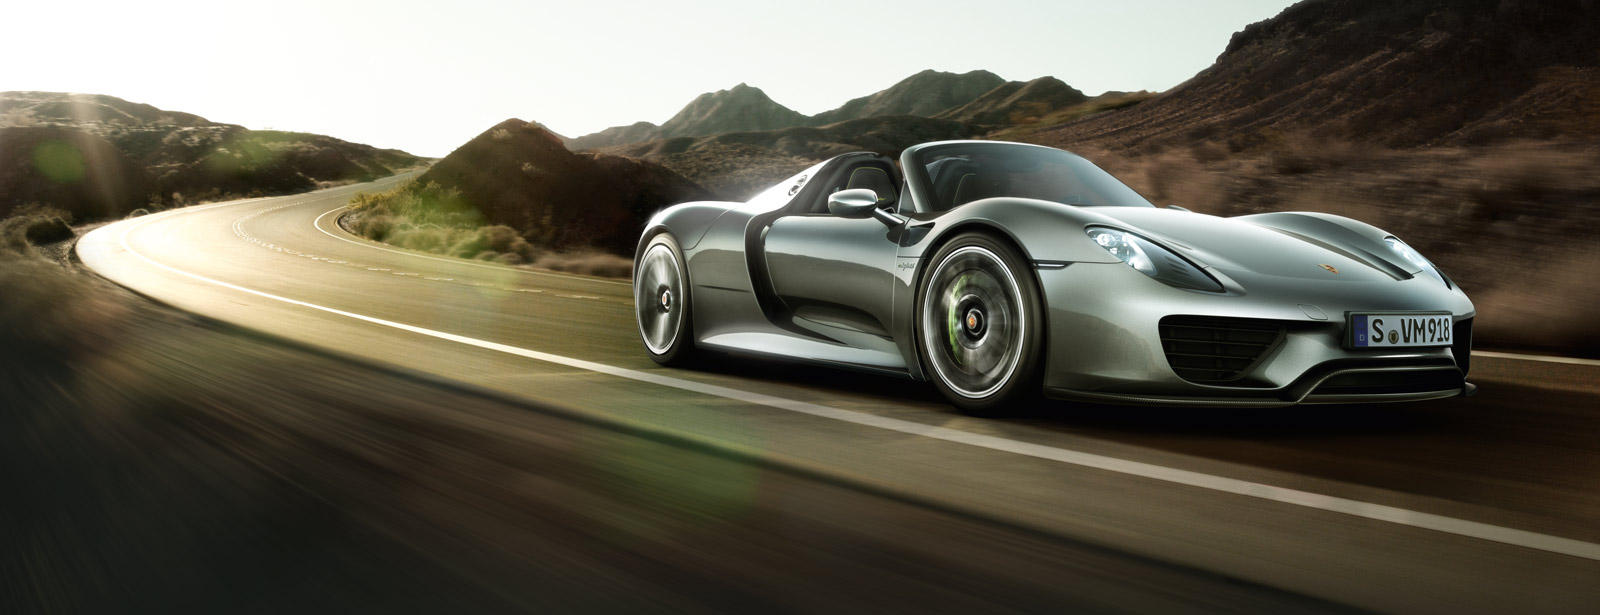 10 most powerful cars in the world - Porsche 918 Spyder